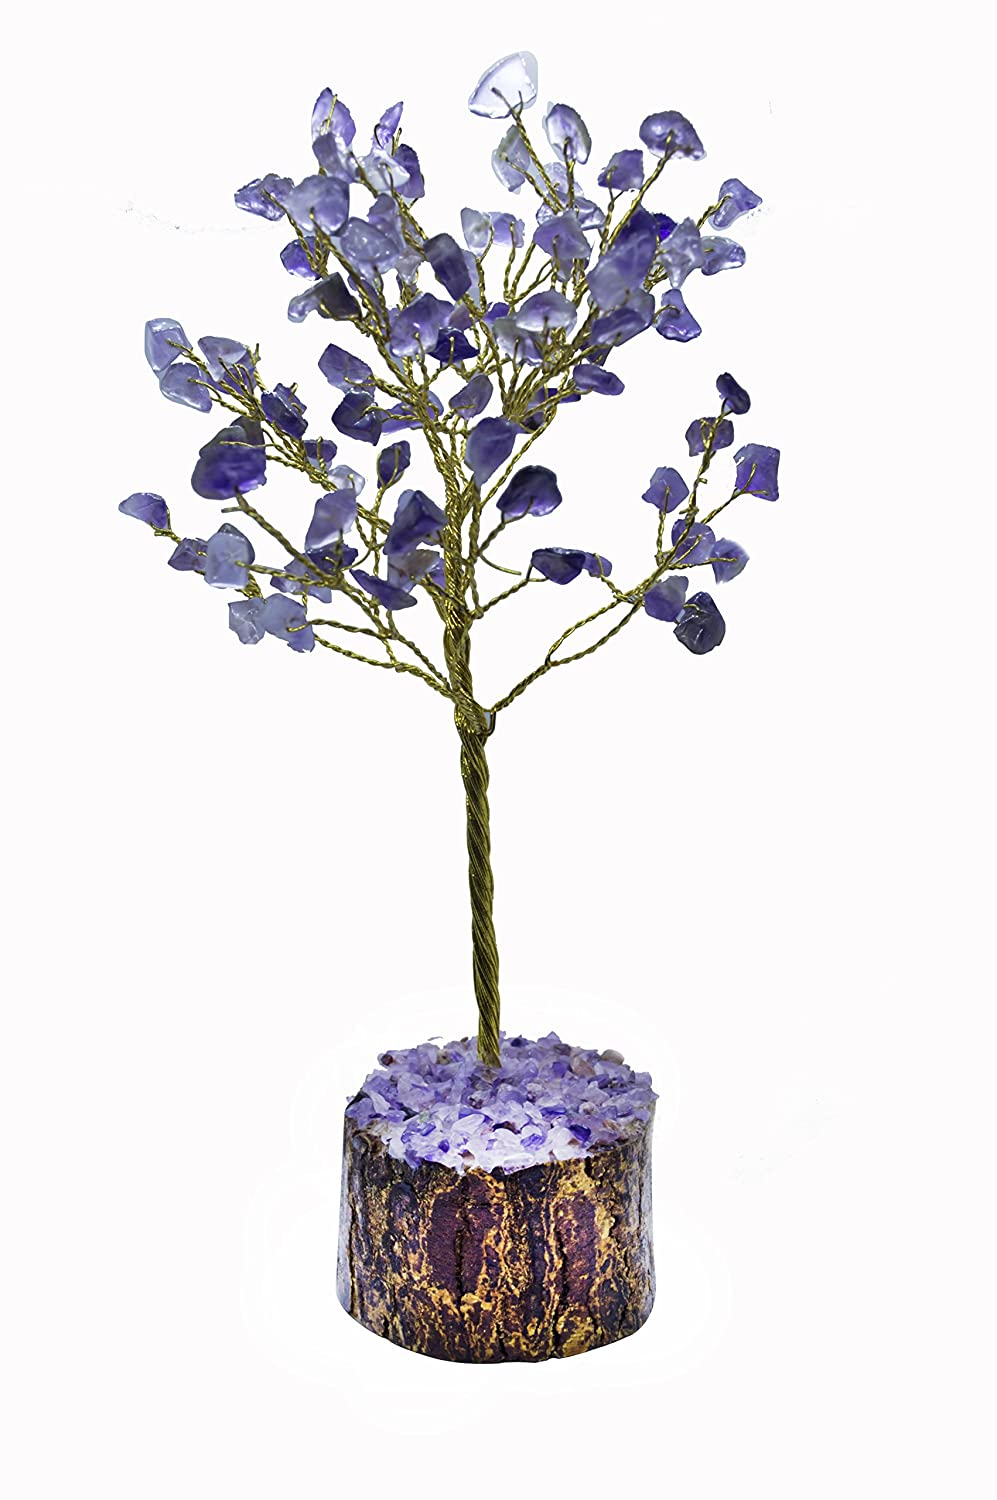 CROCON Amythest Natural Color Healing Gemstone Crystal Bonsai Fortune Money Tree for Good Luck, Wealth & Prosperity-Home Office Table Decor Spiritual Gift (With Golden Wire Branches) Size 7-8 Inches